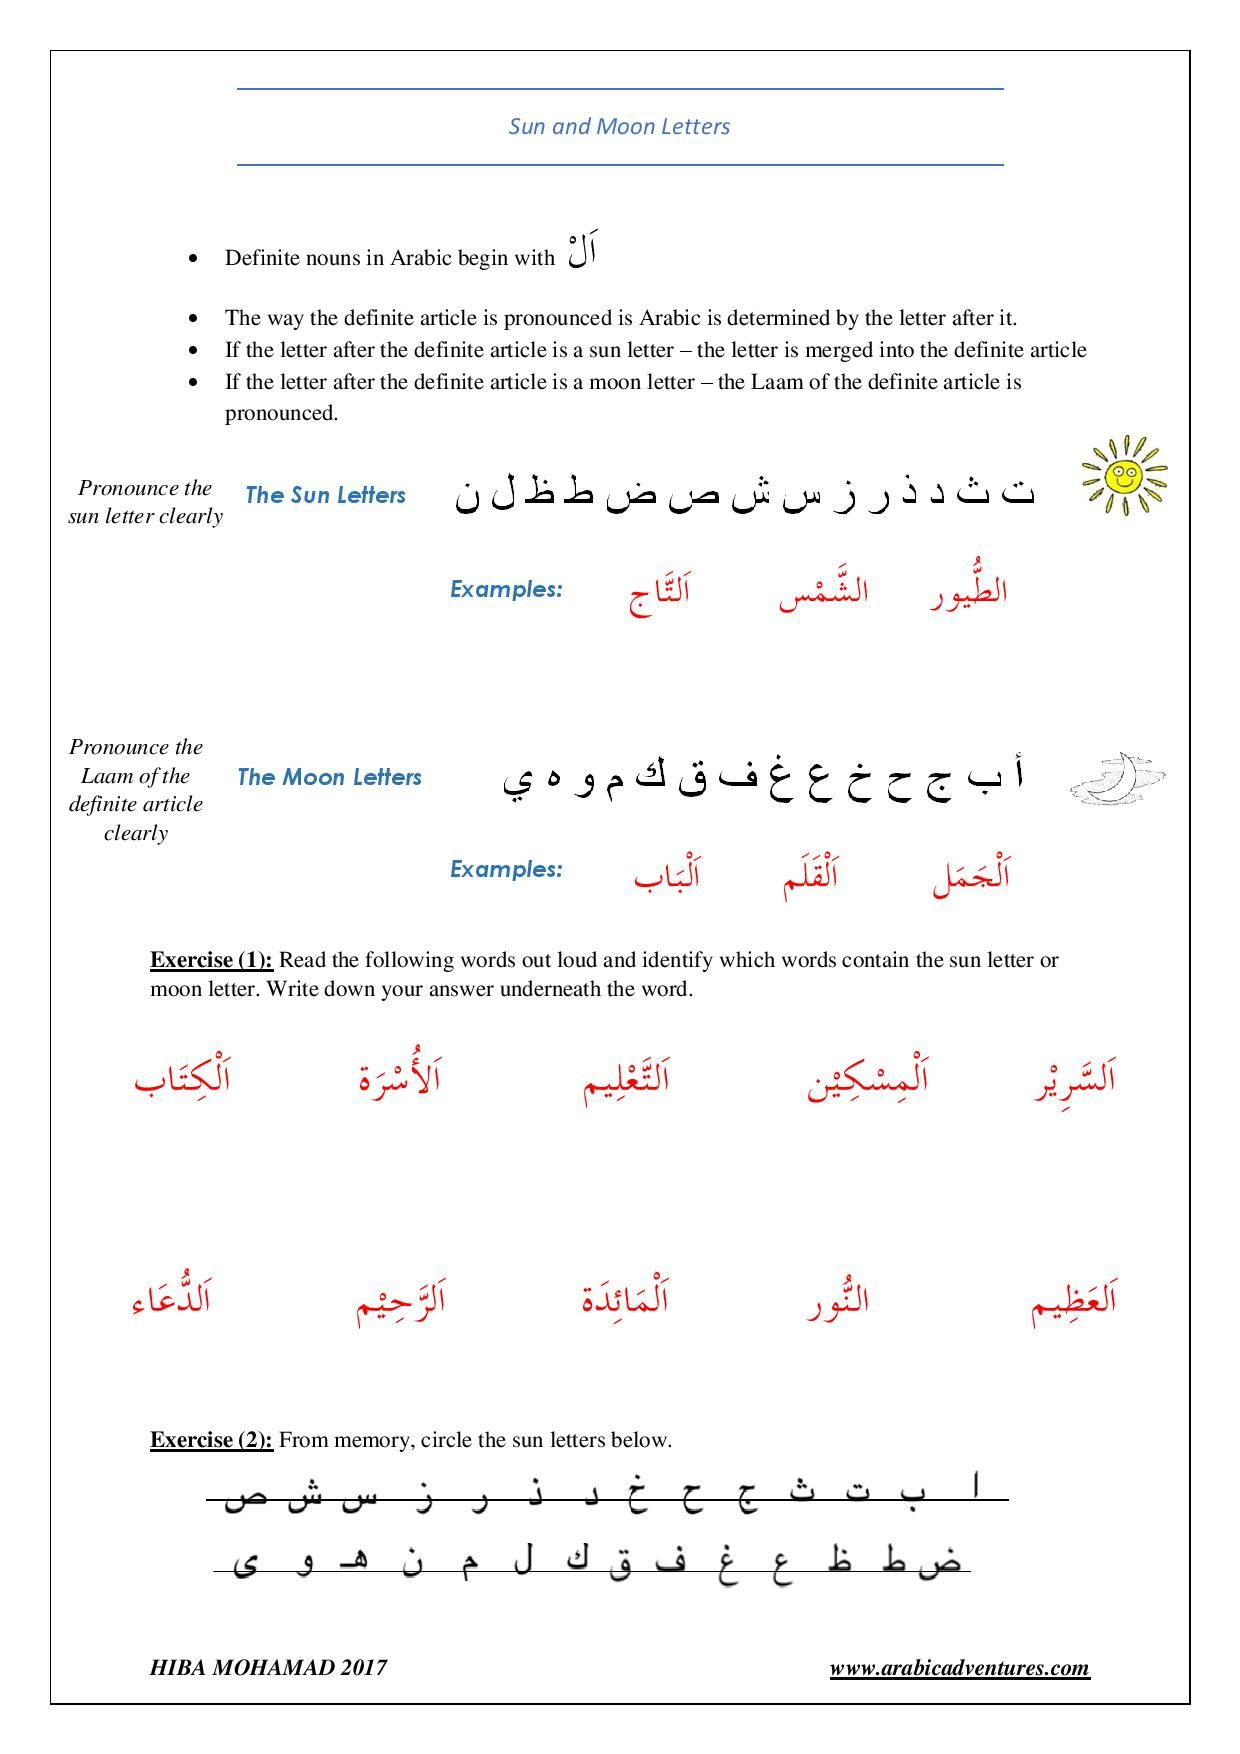 worksheet Sun Worksheets sun and moon letters in arabic worksheet www arabicadventures com com